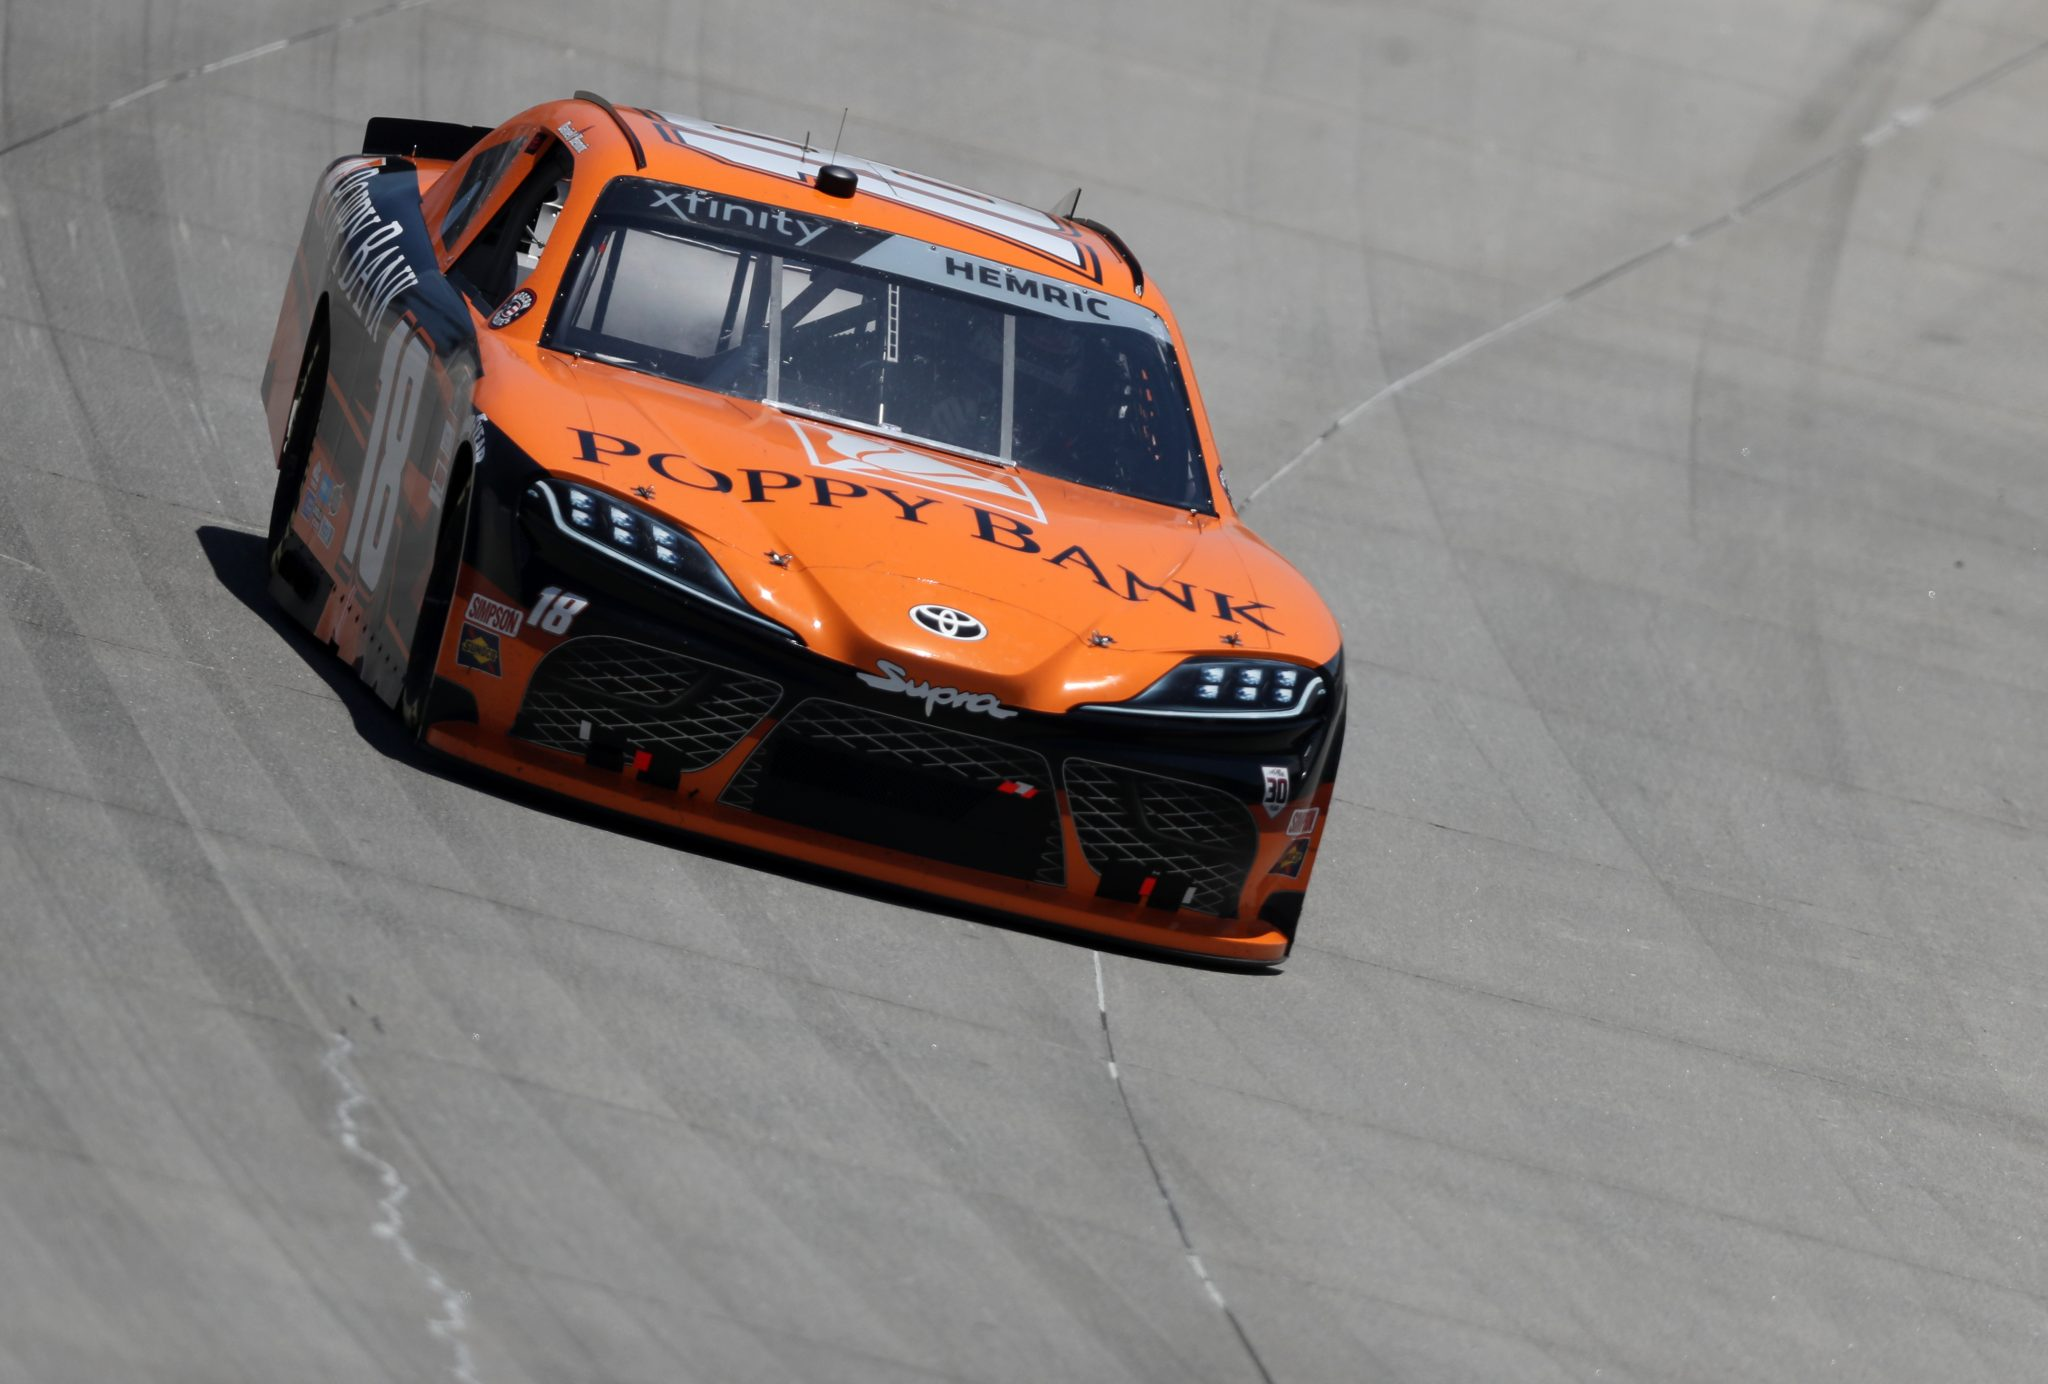 DOVER, DELAWARE - MAY 15: Daniel Hemric, driver of the #18 Poppy Bank Toyota, races during the NASCAR Xfinity Series Drydene 200 race at Dover International Speedway on May 15, 2021 in Dover, Delaware. (Photo by James Gilbert/Getty Images) | Getty Images